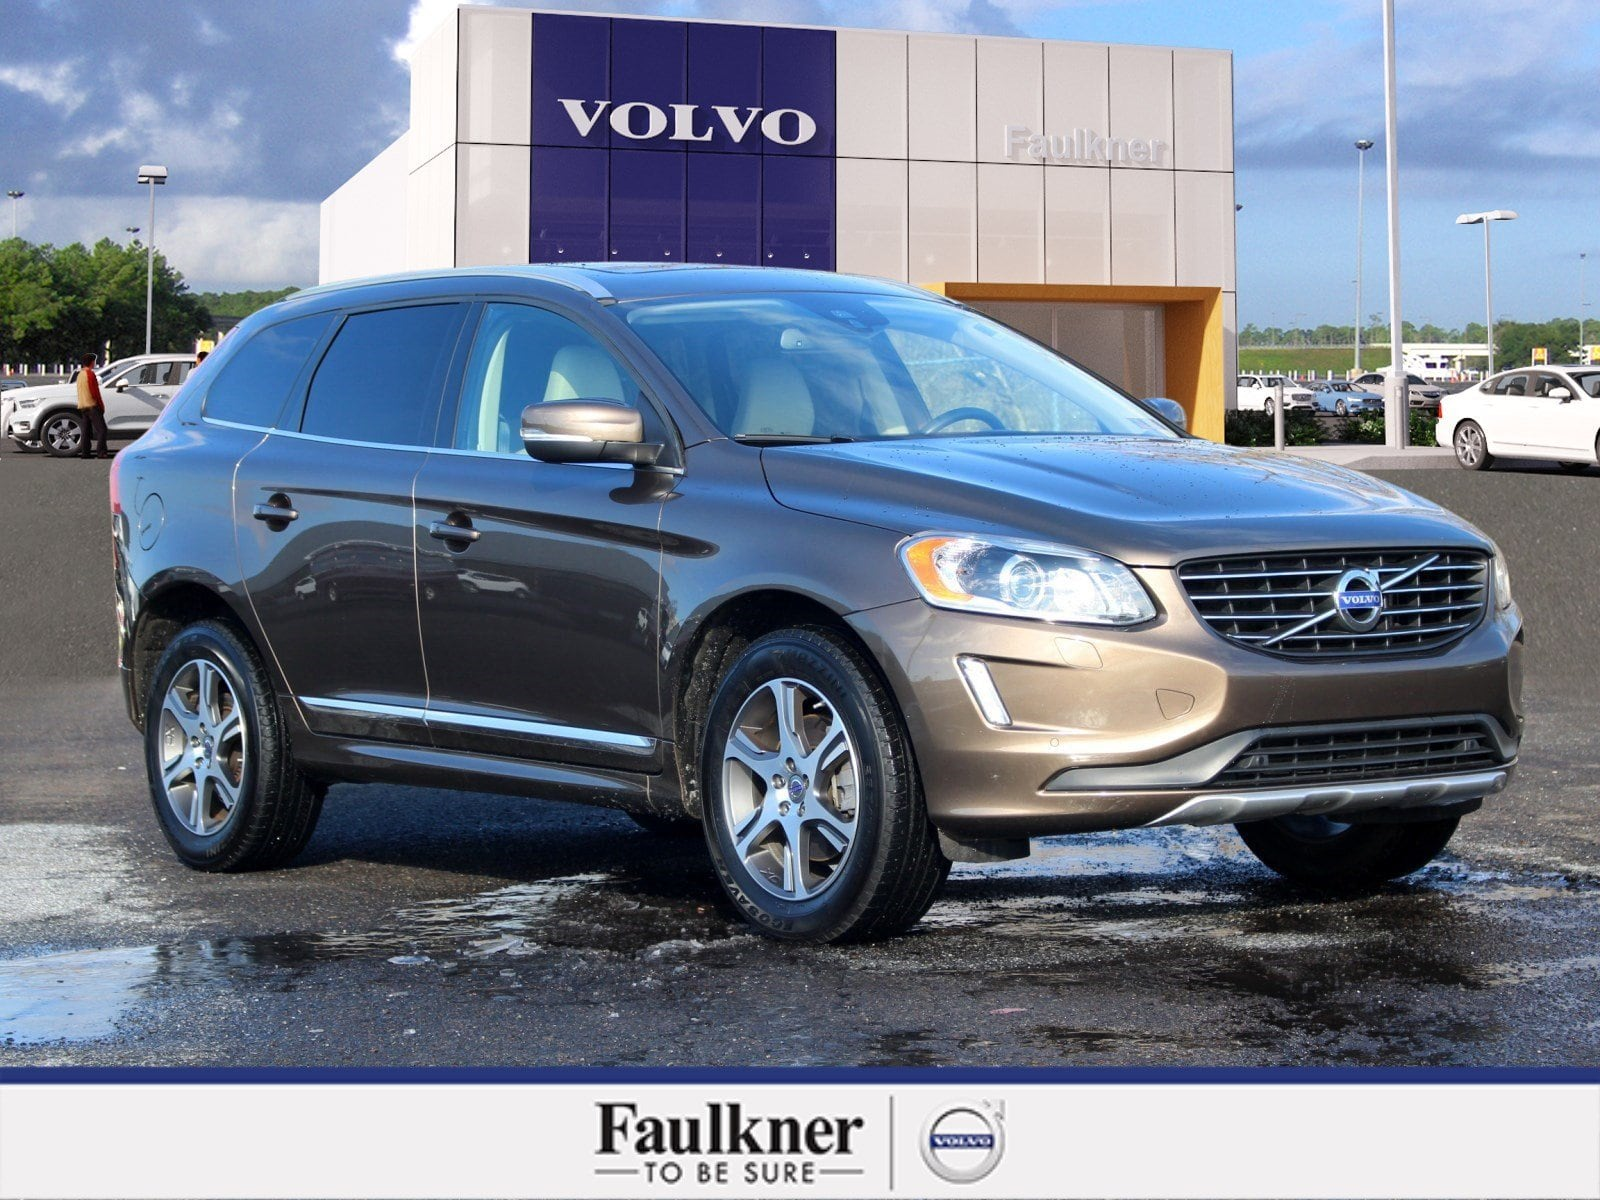 volvo cars for sale near me unique faulkner volvo cars trevose used cars. Black Bedroom Furniture Sets. Home Design Ideas